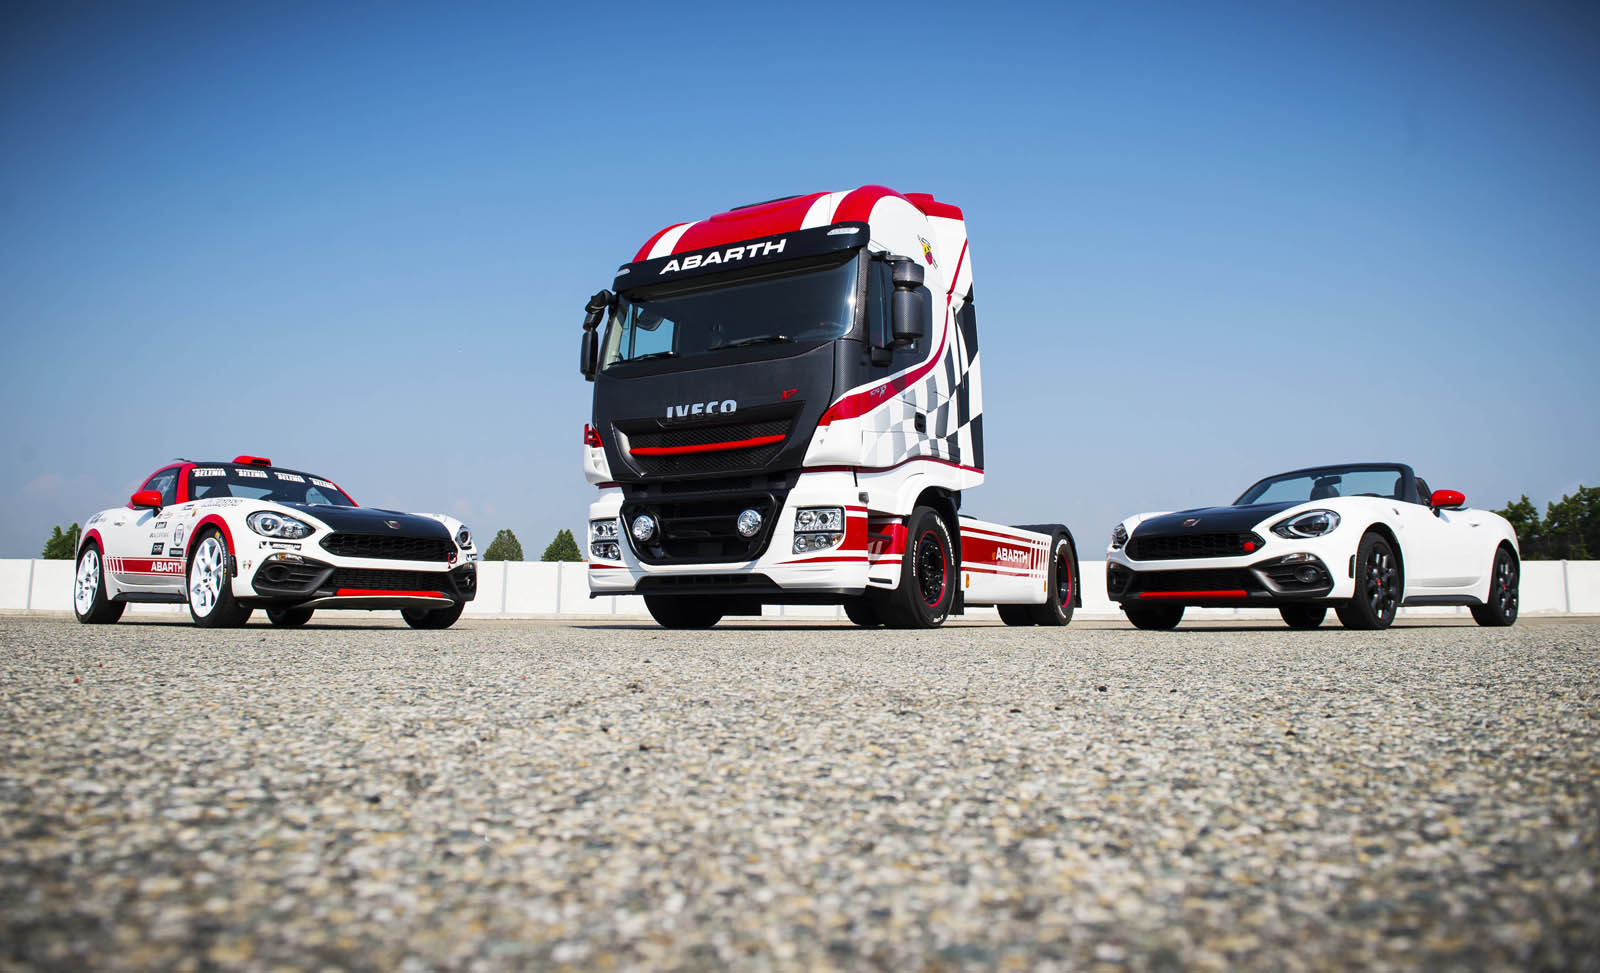 Abarth Iveco truck (2)